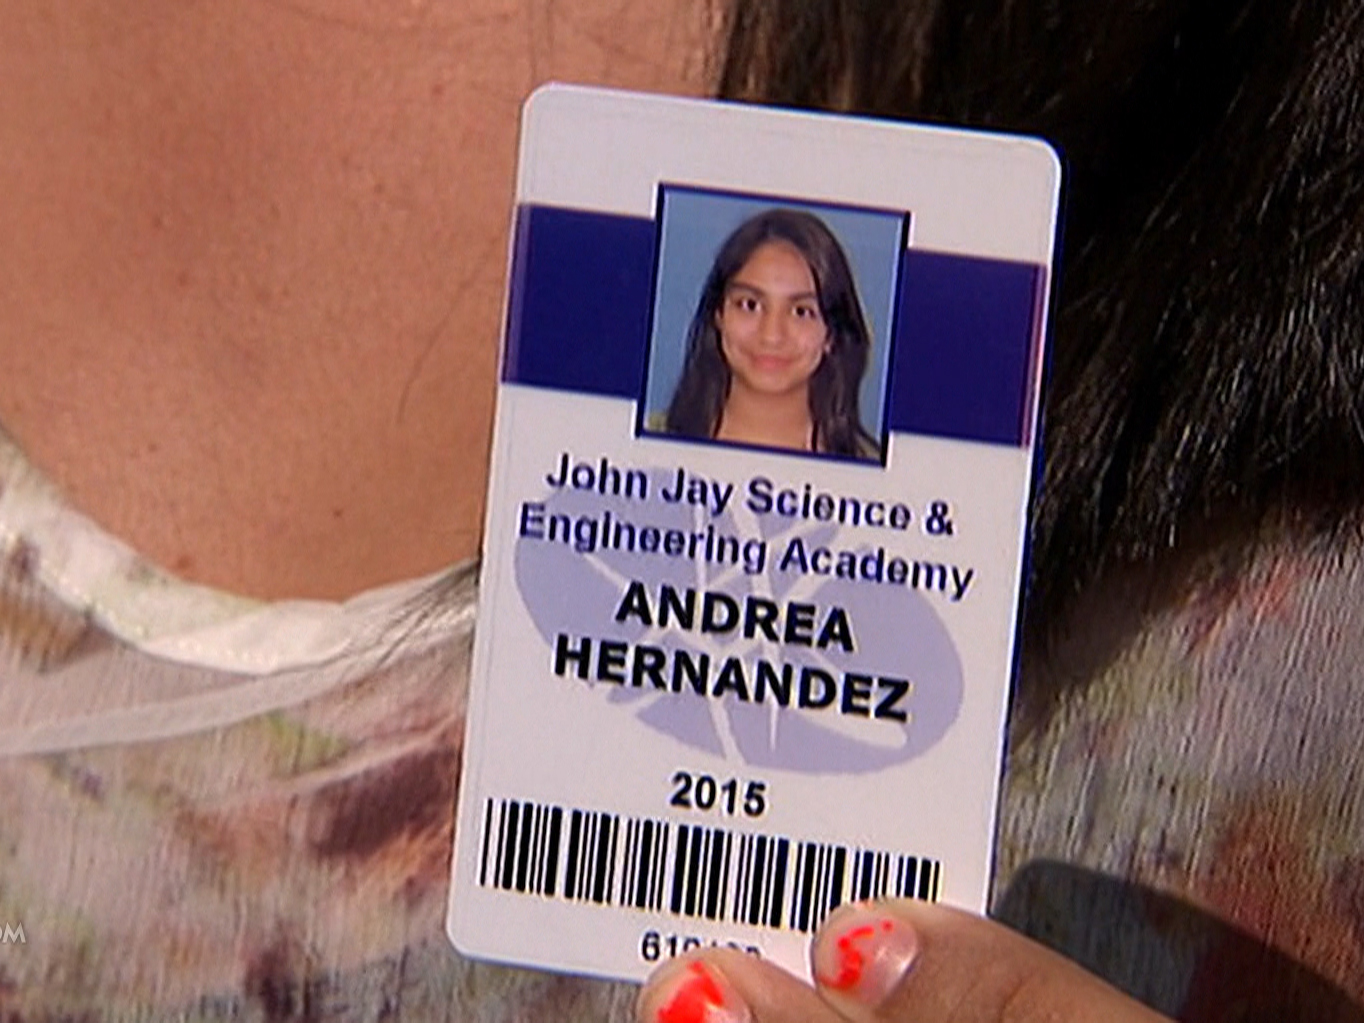 school id badges track students